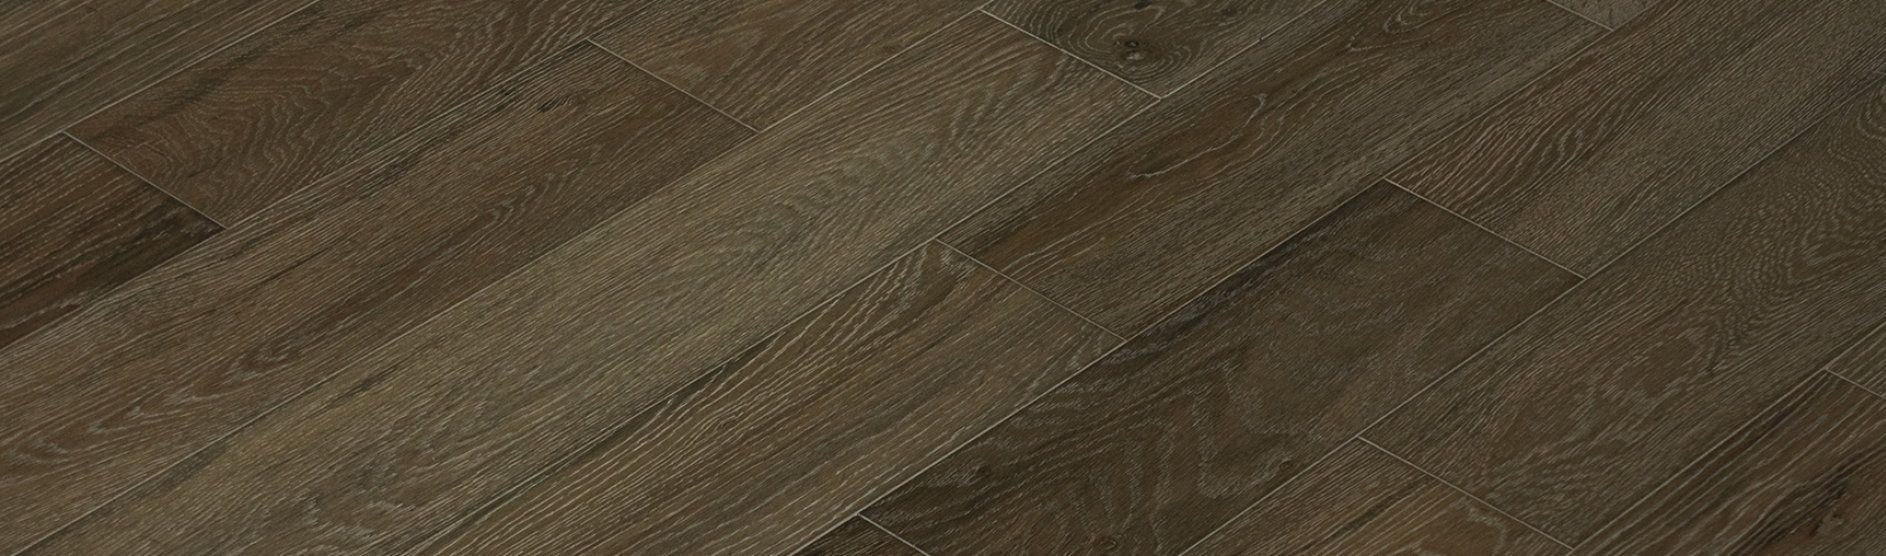 formaldehyde free engineered wood flooring, milky way collection